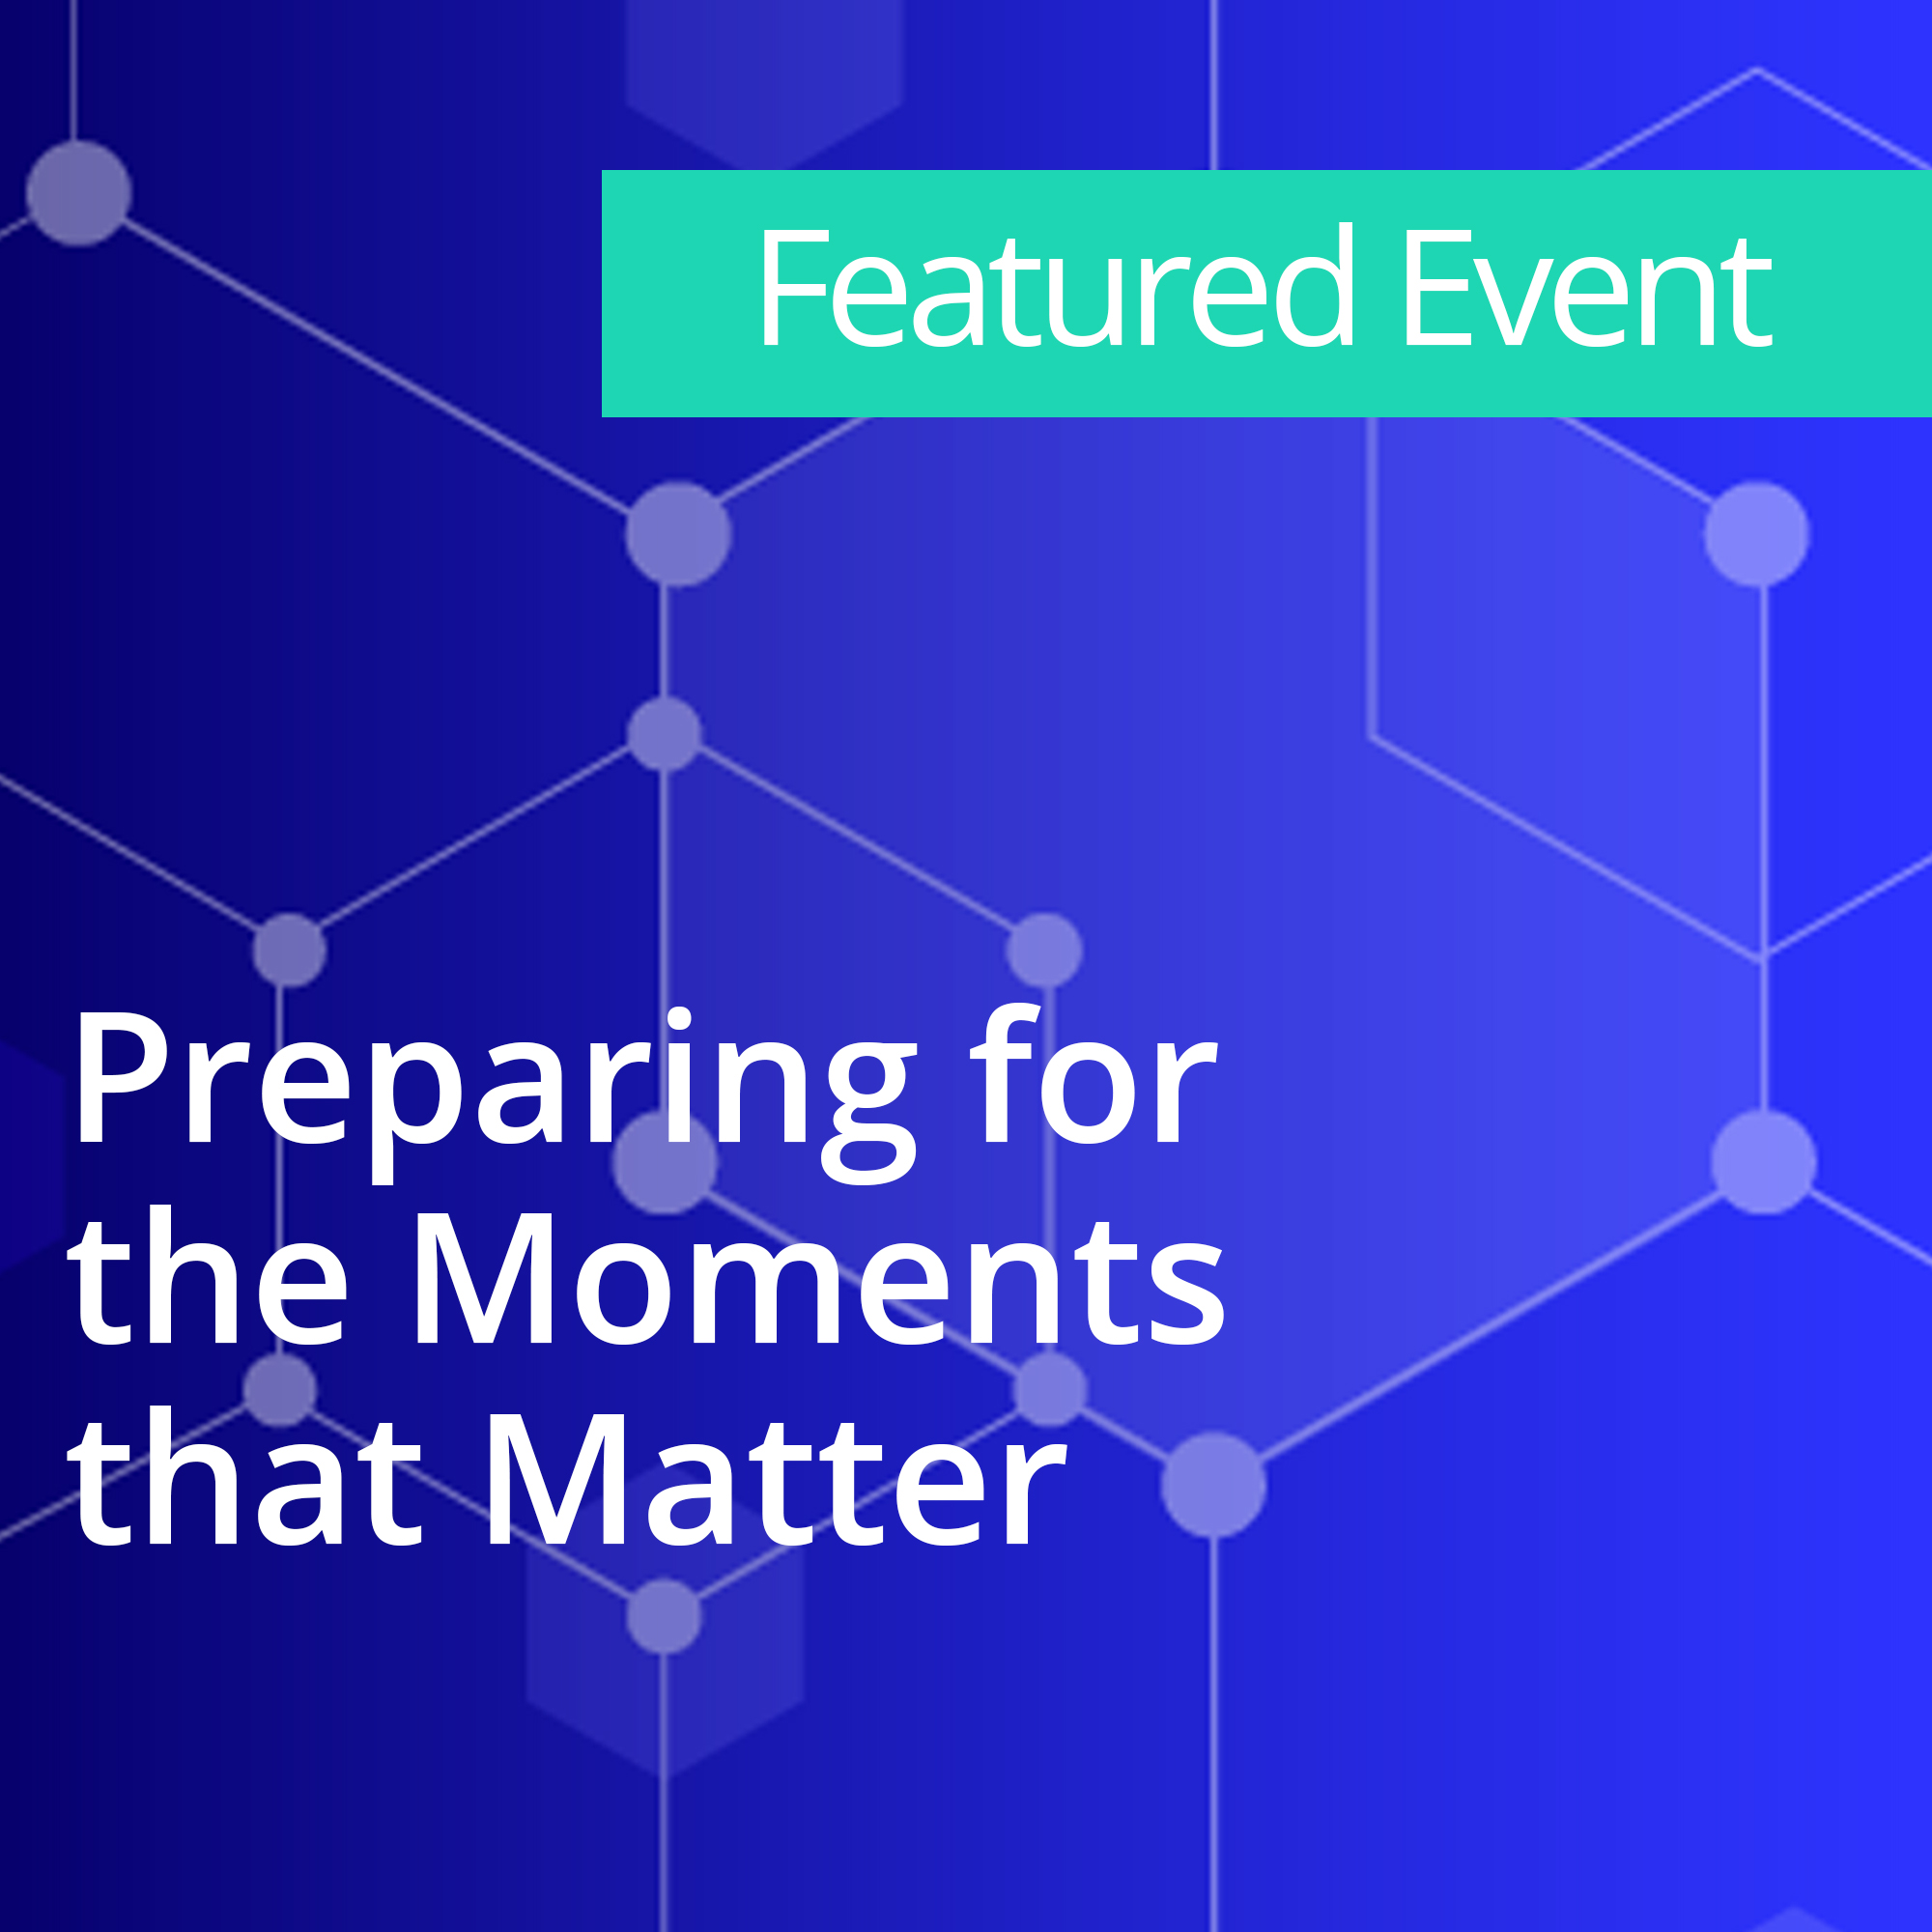 Preparing for the Moments that Matter